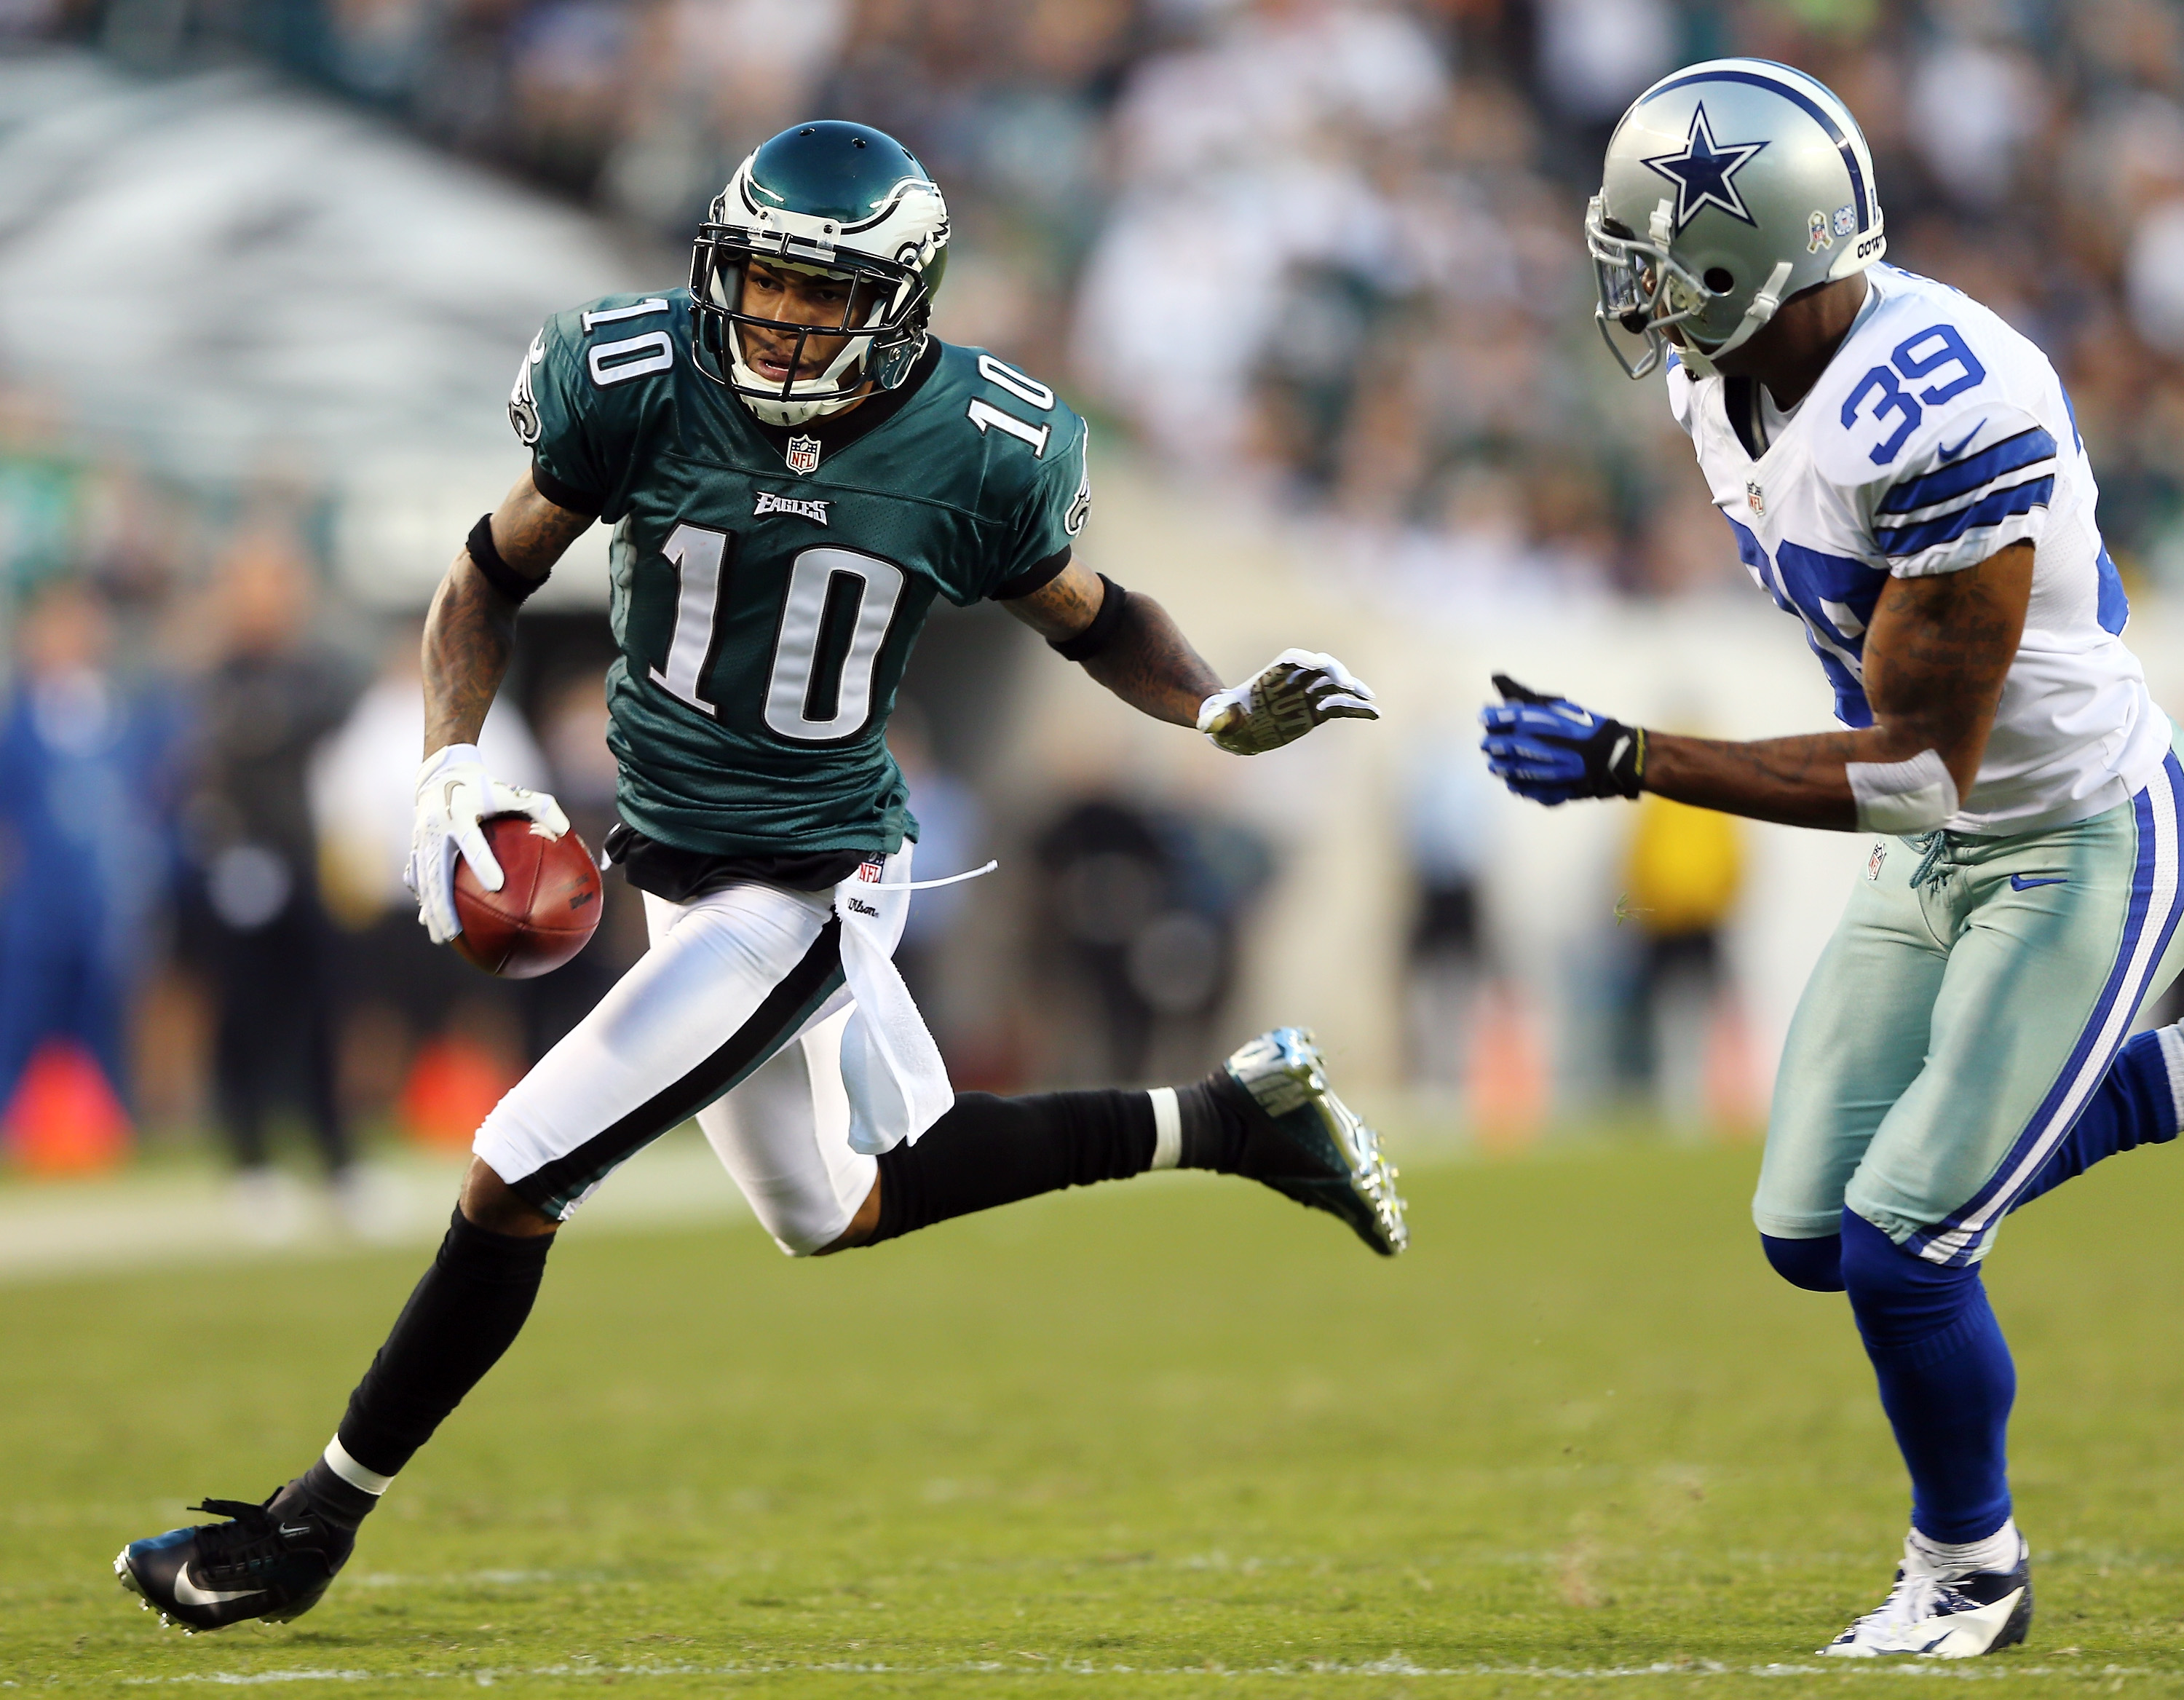 PHILADELPHIA, PA - NOVEMBER 11:  DeSean Jackson #10 of the Philadelphia Eagles carries the ball as Brandon Carr #39 of the Dallas Cowboys defends on November 11, 2012 at Lincoln Financial Field in Philadelphia, Pennsylvania.  (Photo by Elsa/Getty Images)